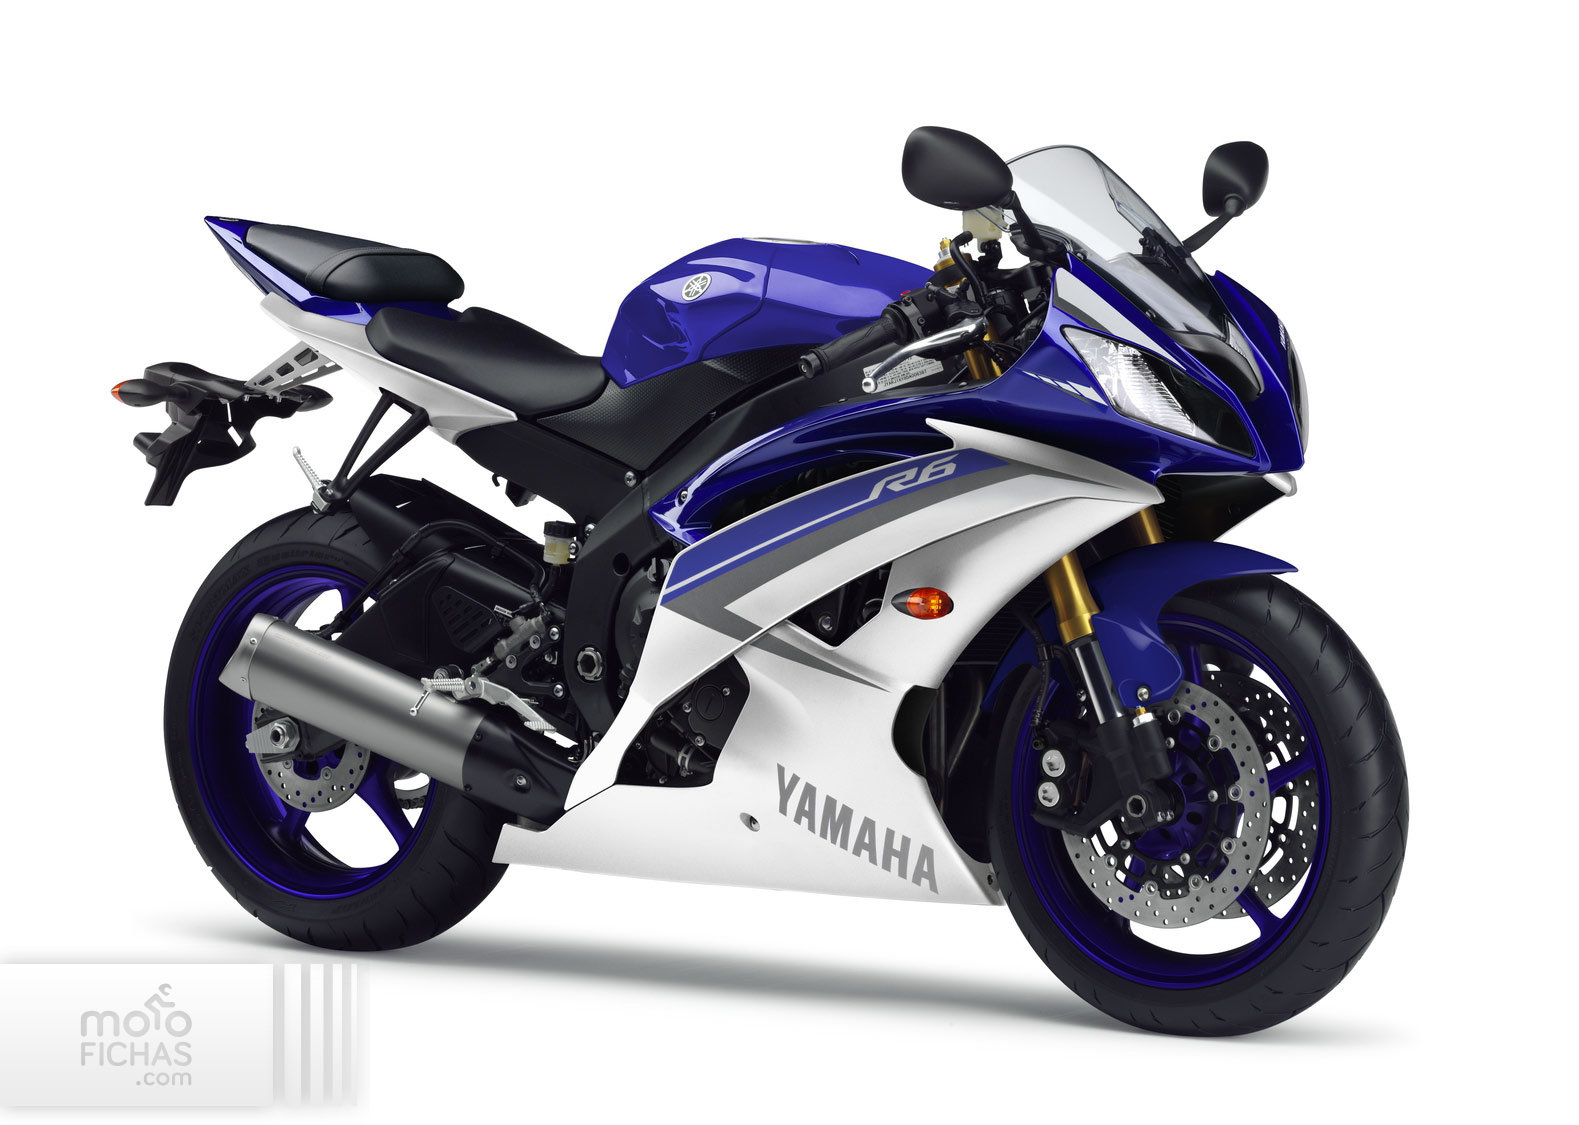 CgKV4mZqlb besides 17105 Yamaha Yzf 750 R Genesis 1997 5 also 2017 Yamaha Yzf R6 R1 Looks Electronics Forks further Lancia together with New 2017 Suzuki Gsx R150 Gixxer Facelift India Launch Date. on yamaha yzf